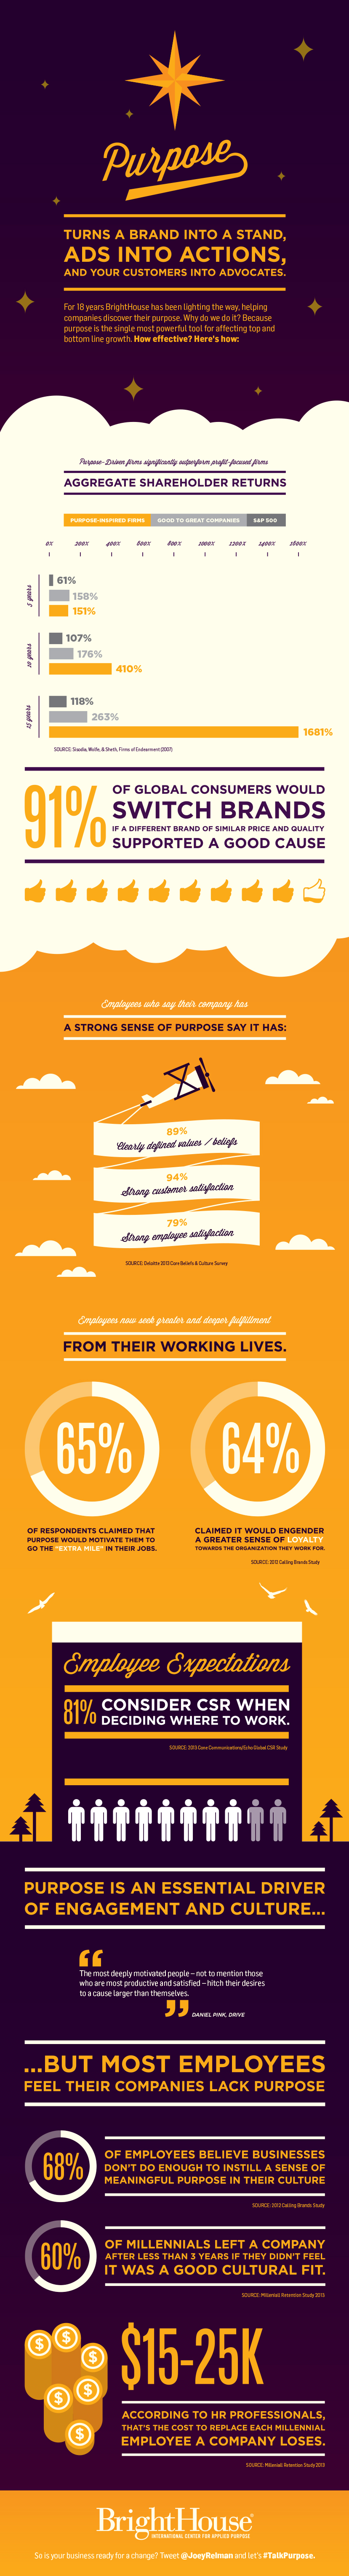 Power of Purpose Infographic BrightHouse